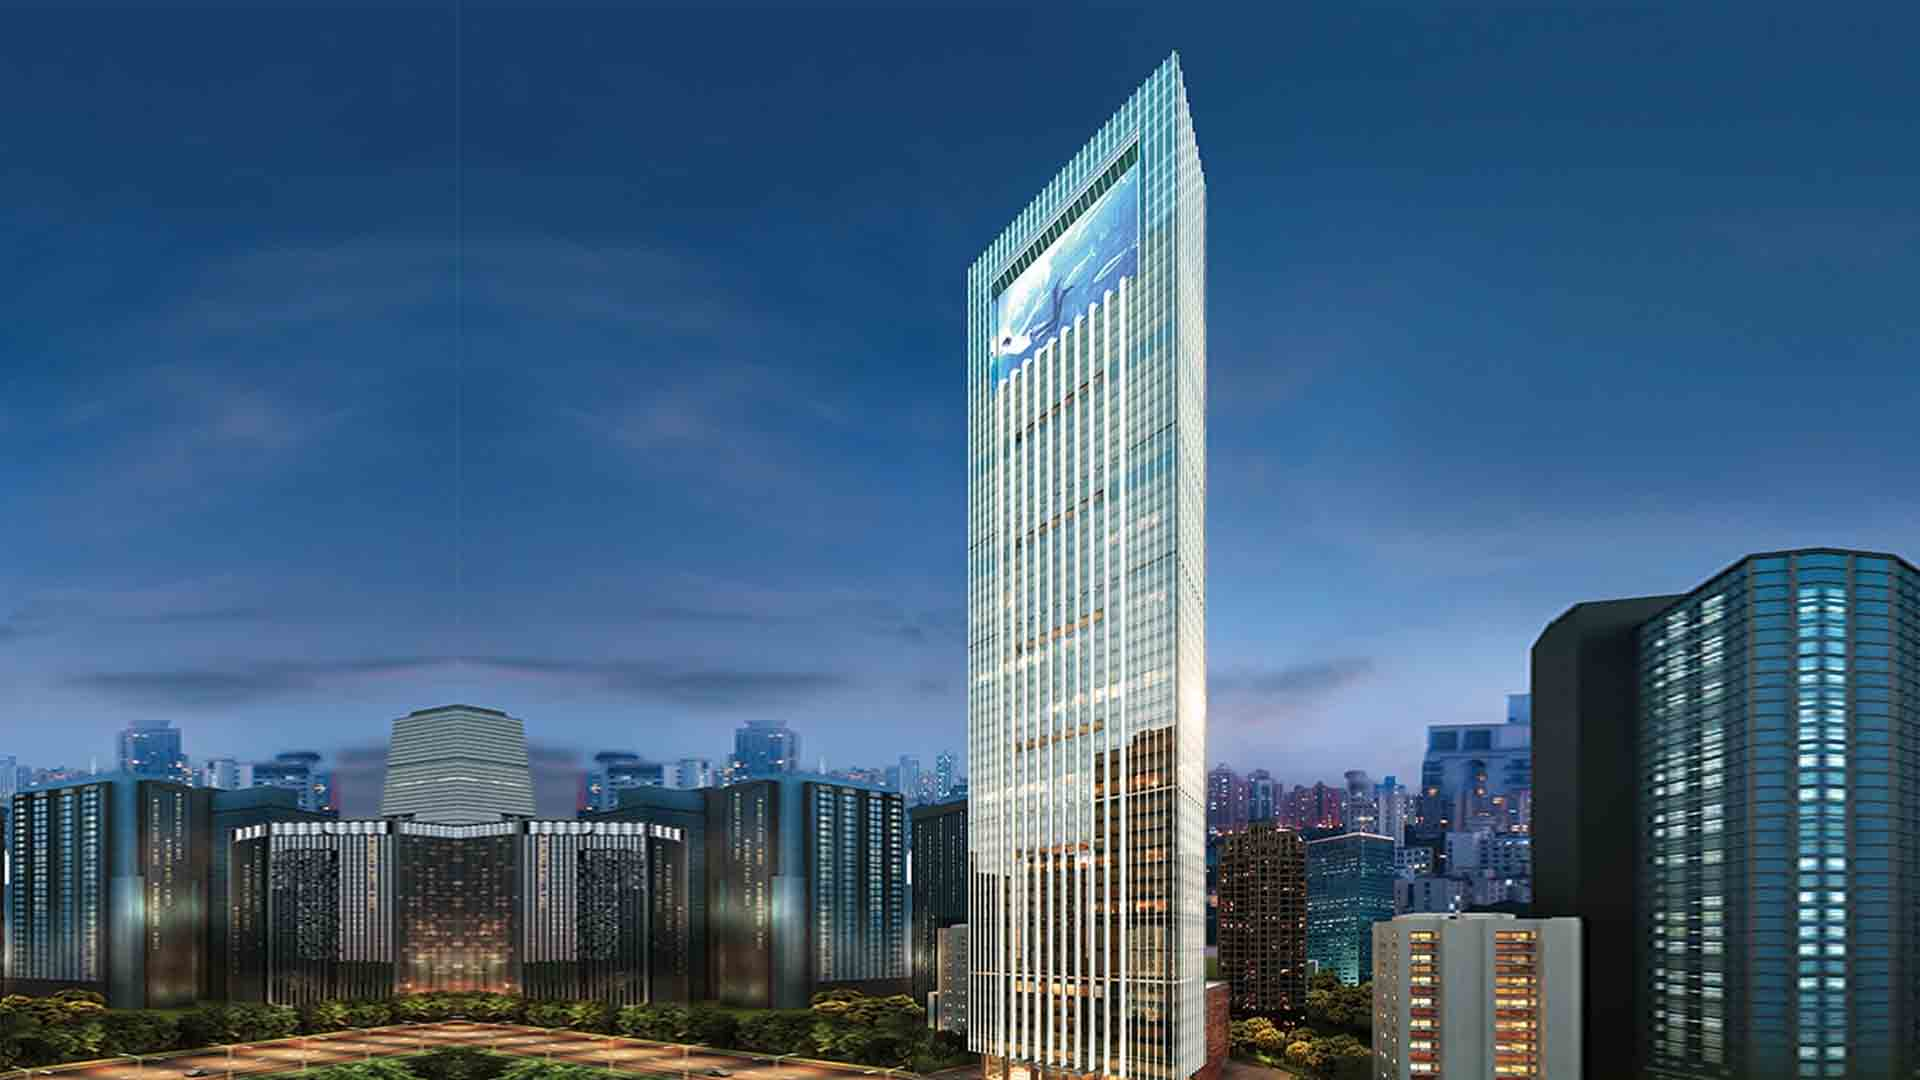 Edelweiss and Parinee Group Get Together For Parinee Eminence, A New Commercial Grade A+ Project In Worli, Mumbai